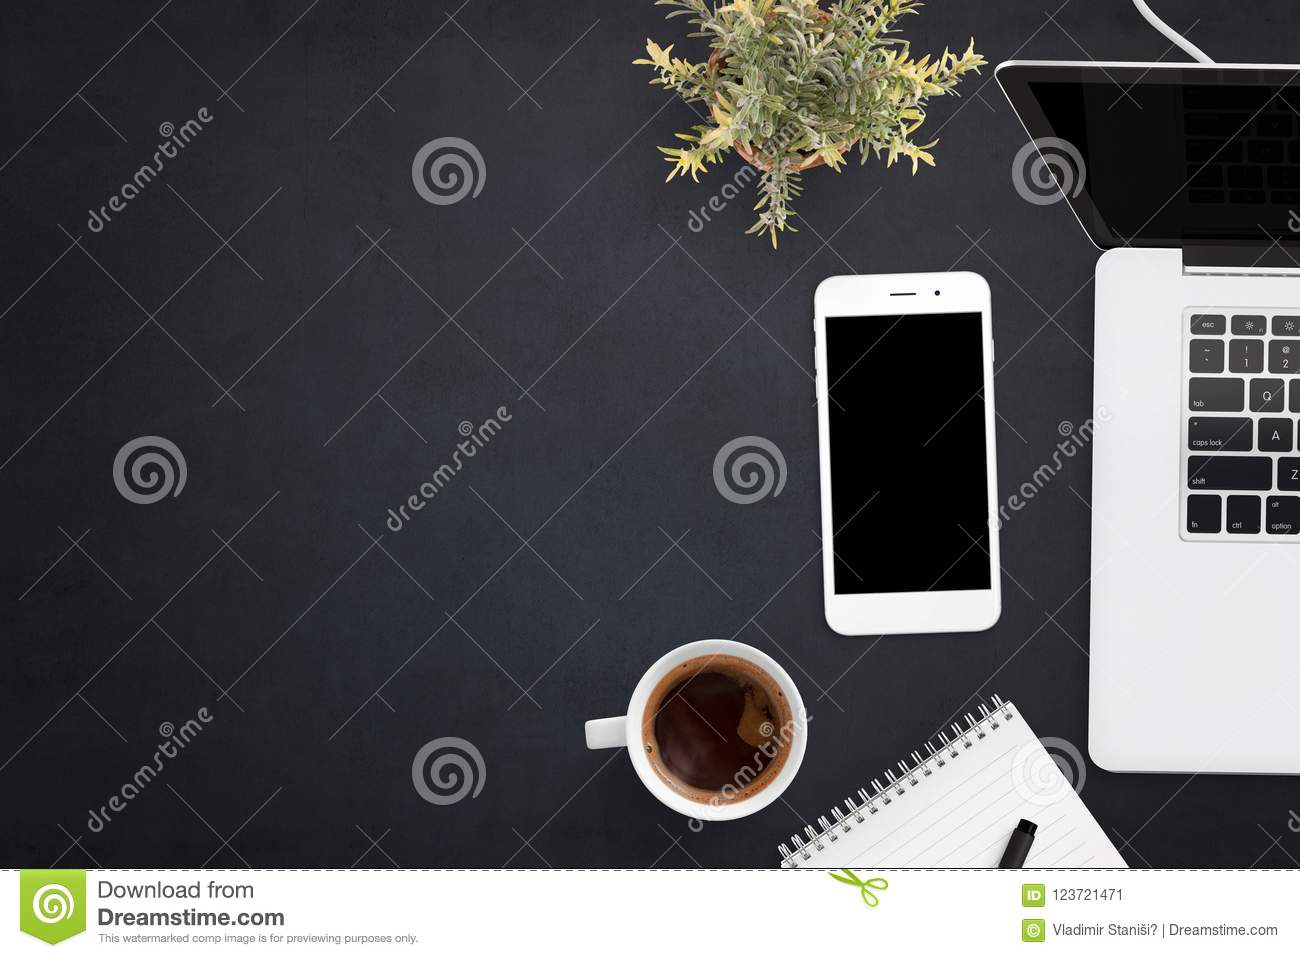 Smart phone and laptop on black office desk with copy space on left side